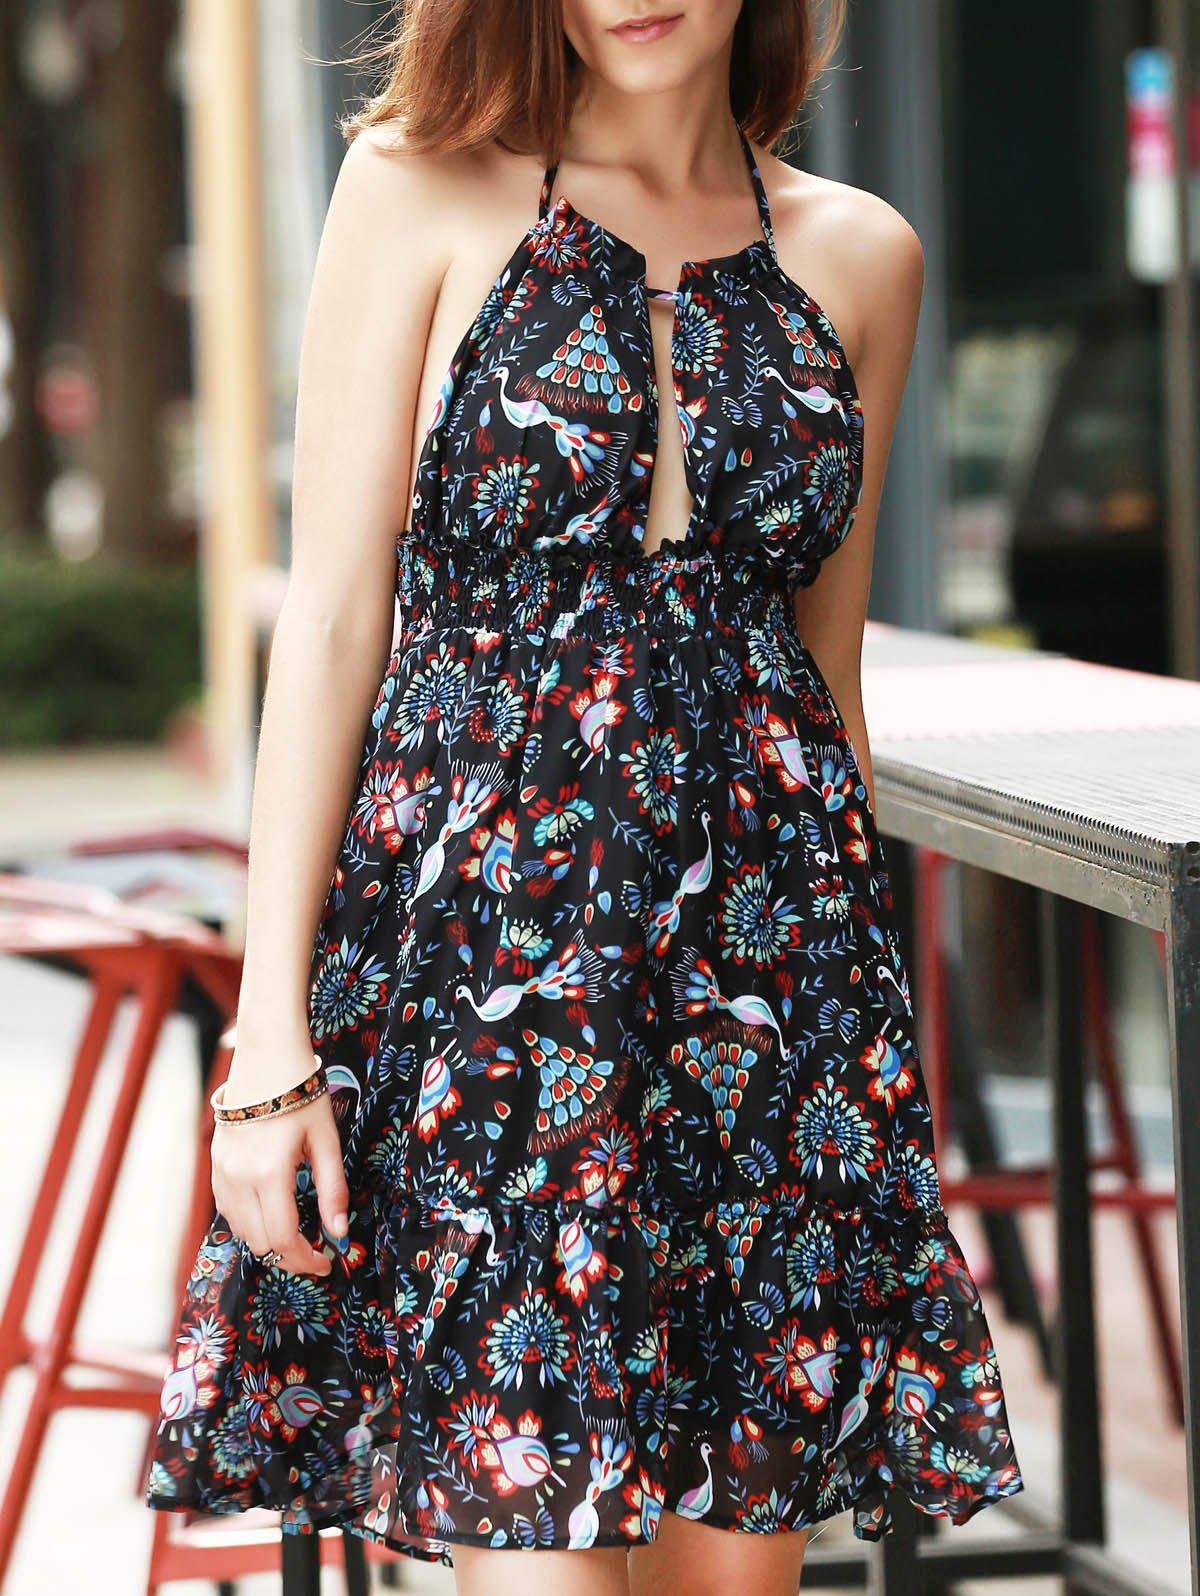 Stylish Women's Halter Print Backless Dress - BLACK S